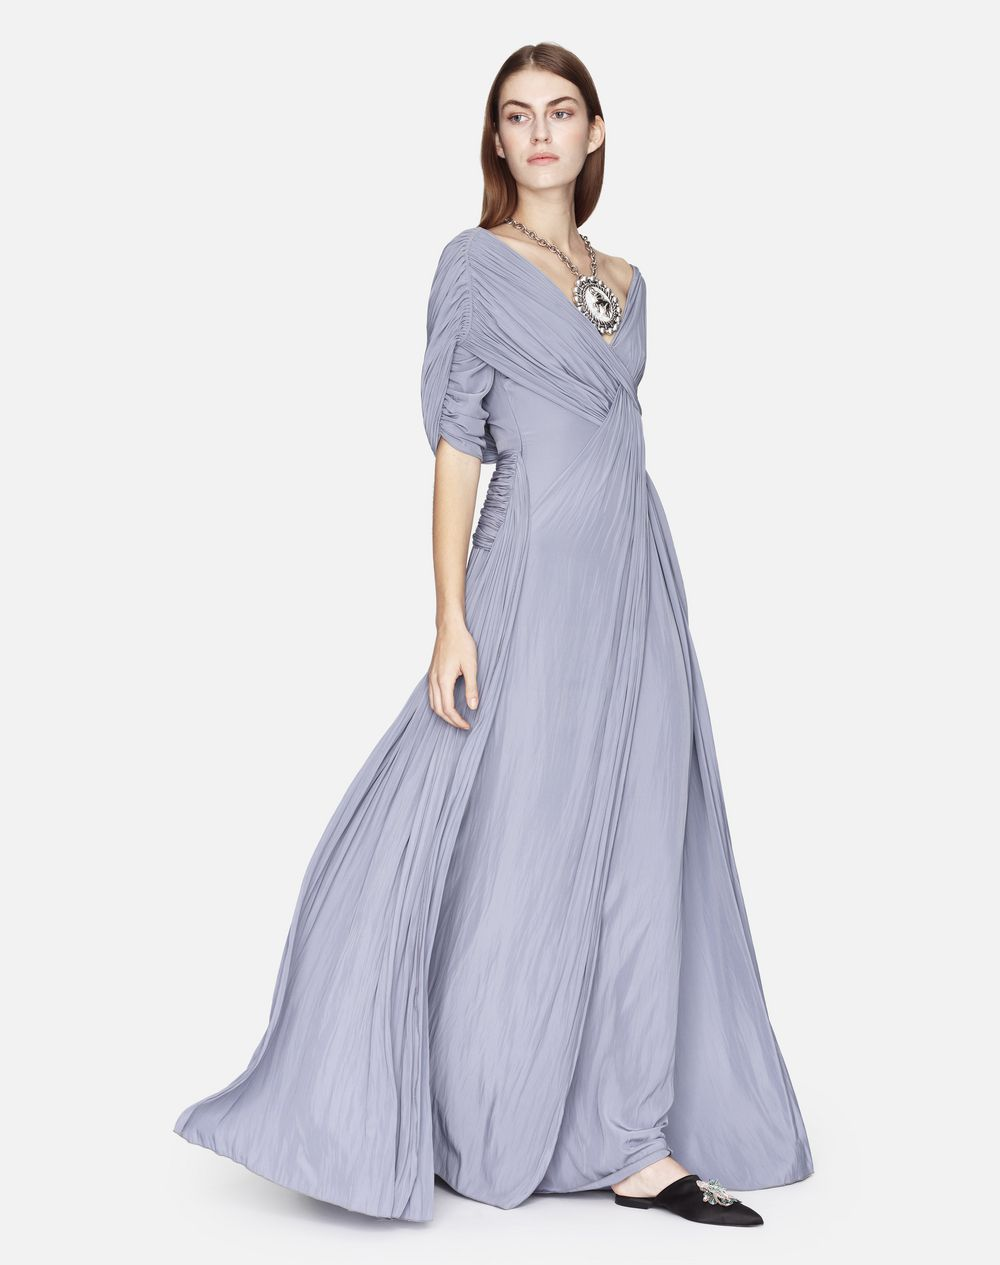 LONG SILK DRAPED DRESS - Lanvin